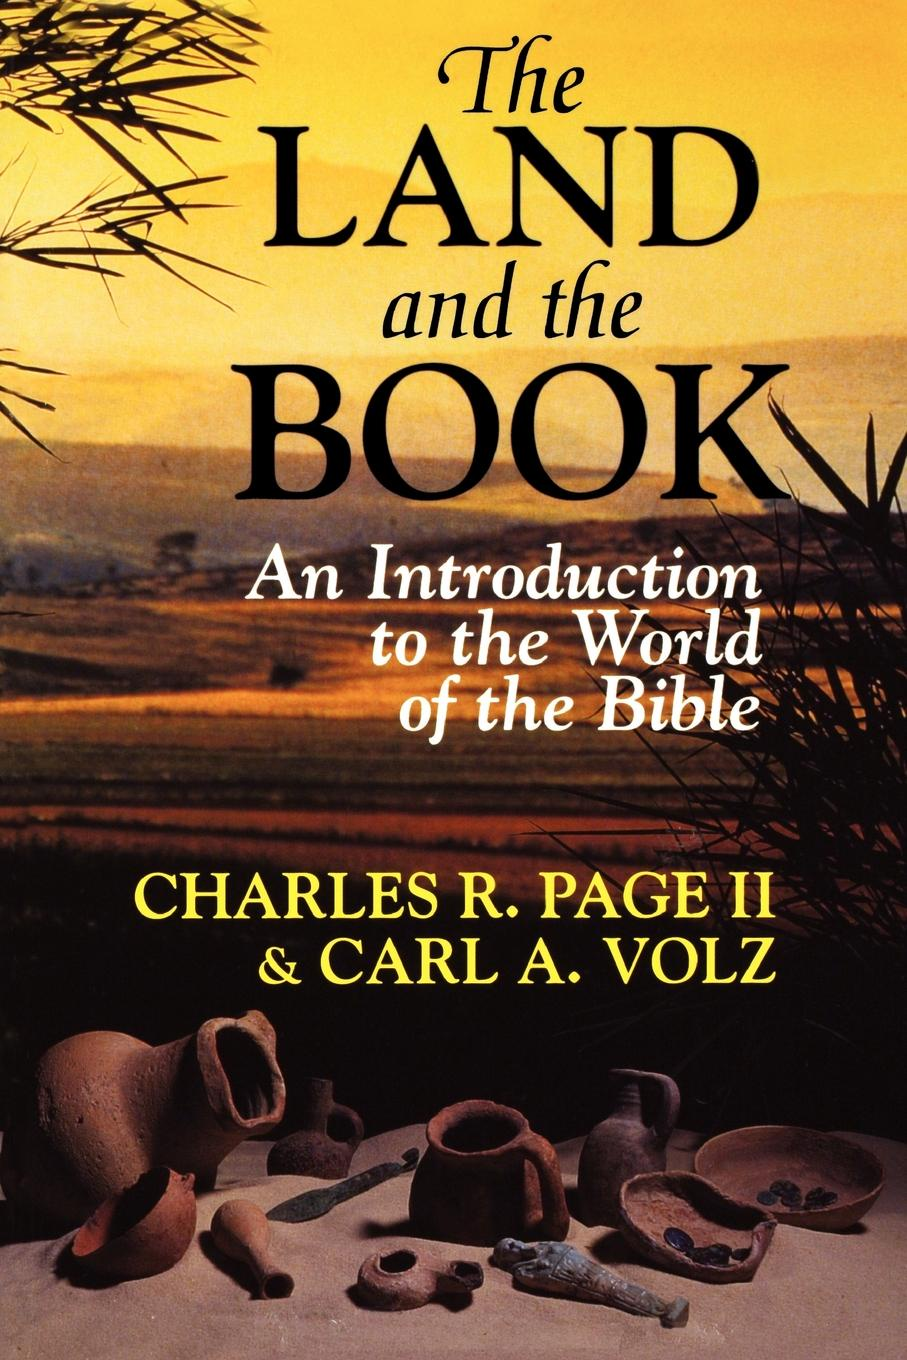 Charles R. Page The Land and the Book christina scull the j r r tolkien companion and guide volume 2 reader's guide part 1 page 9 page 2 page 8 page 2 page 6 page 10